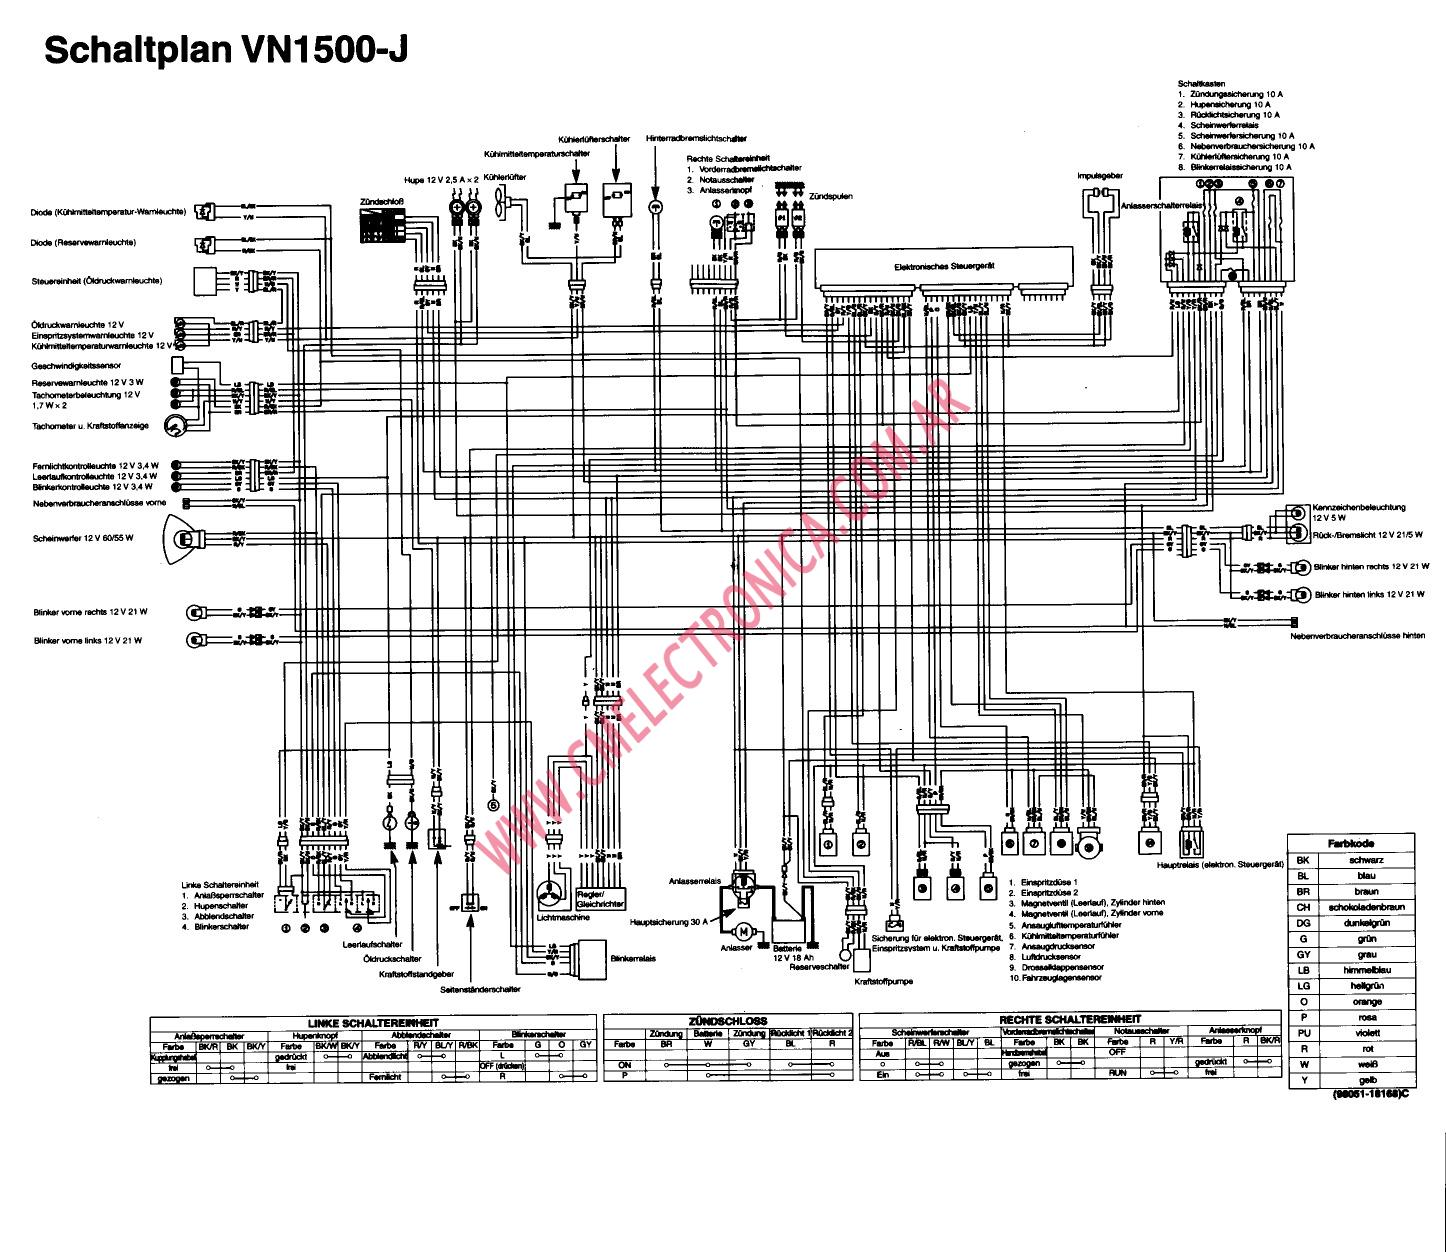 A Klf 300 Wiring Diagram also Wiring Diagram For 2012 Polaris Ranger 800 Xp as well 306033737157358643 further 2000 Arctic Cat 300 Wiring Diagram moreover Kawasaki Prairie 400 Schematic. on kawasaki prairie 700 wiring diagram